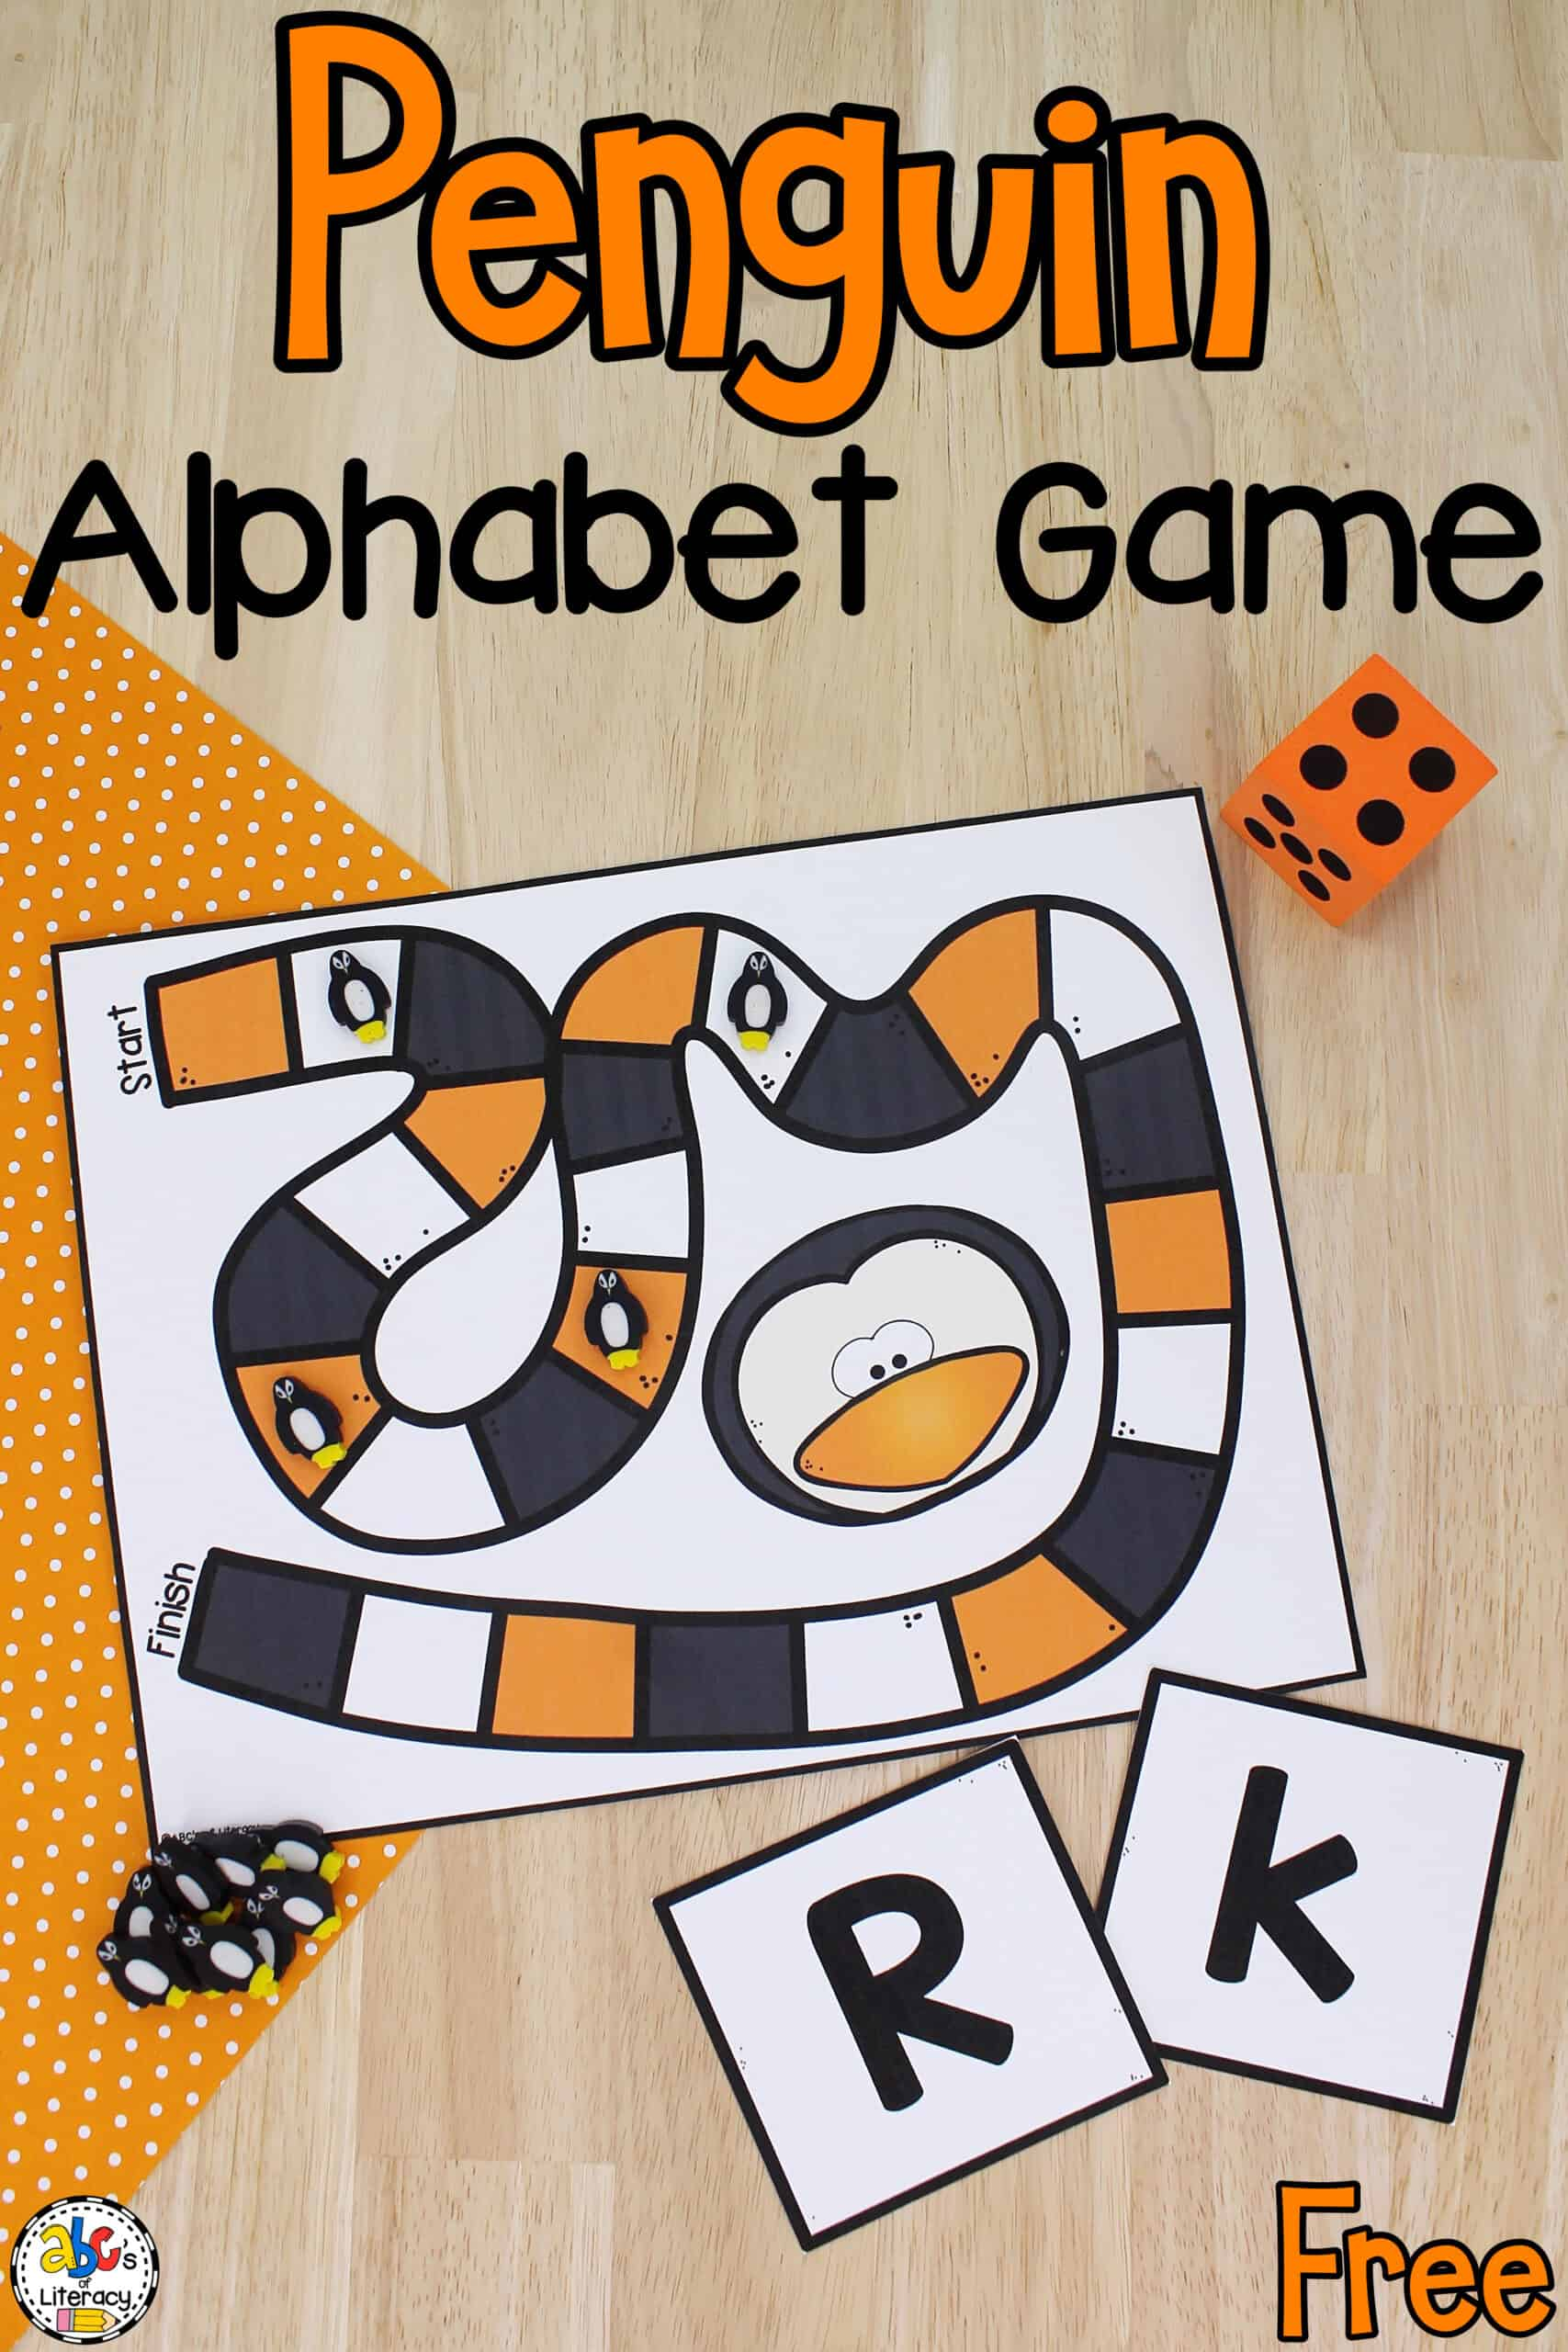 Penguin Alphabet Game